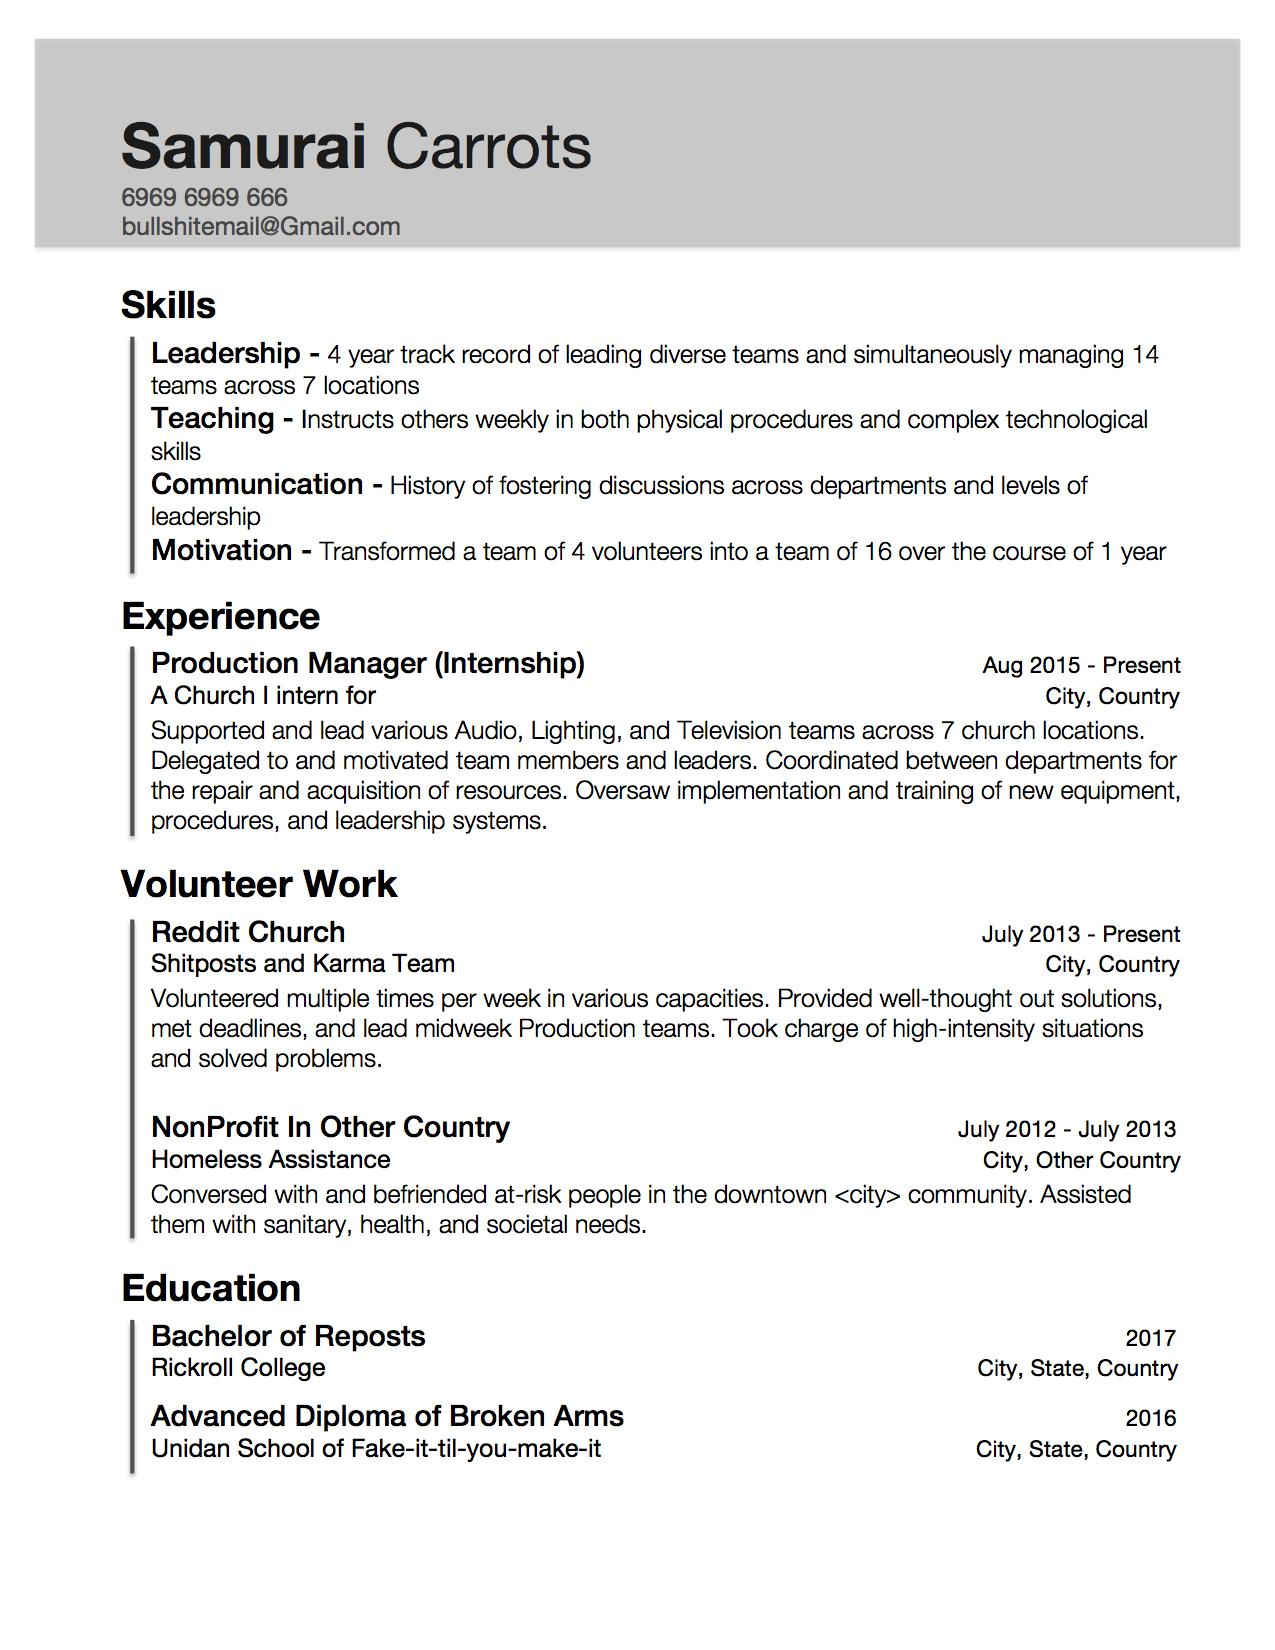 resume with little work experience but skills acquired through internship and Resume Putting Volunteer Work On Resume